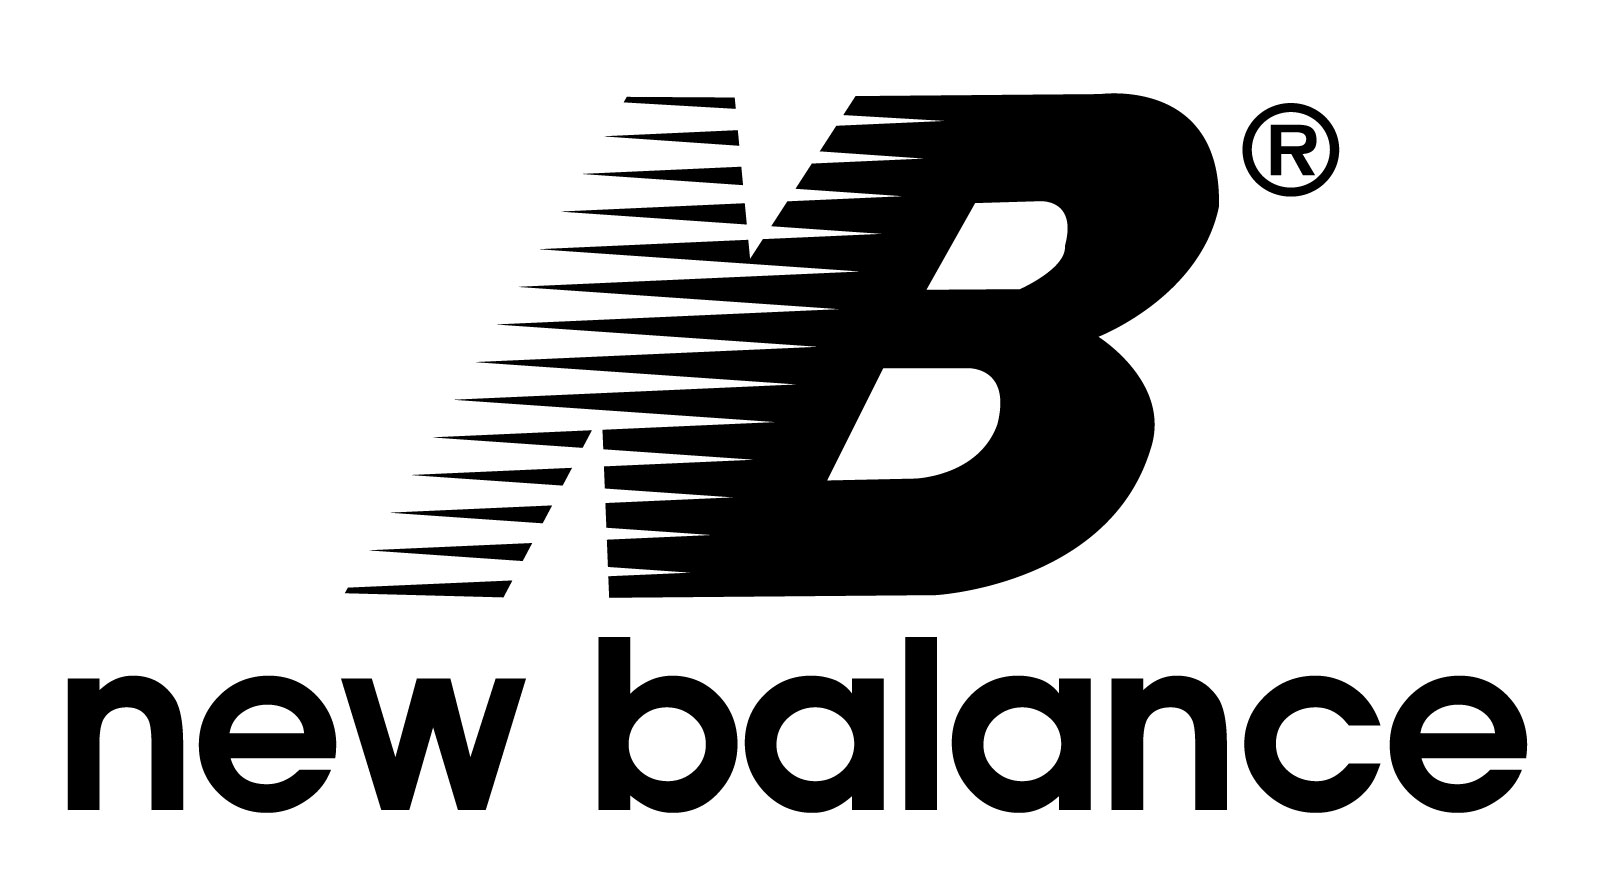 New Balance Up to Extra 25% Off Select Categories